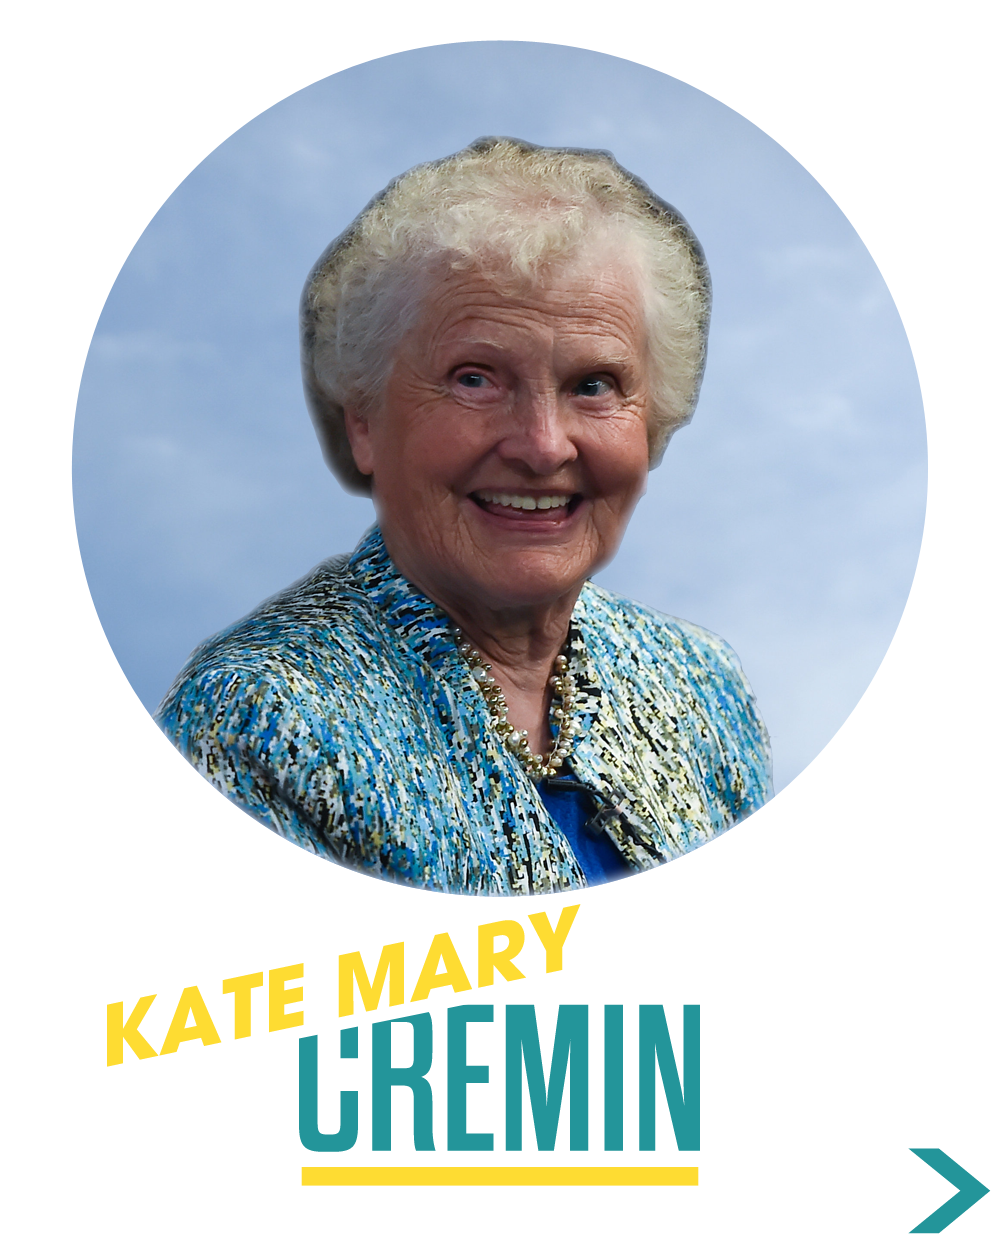 Kate Mary Cremin